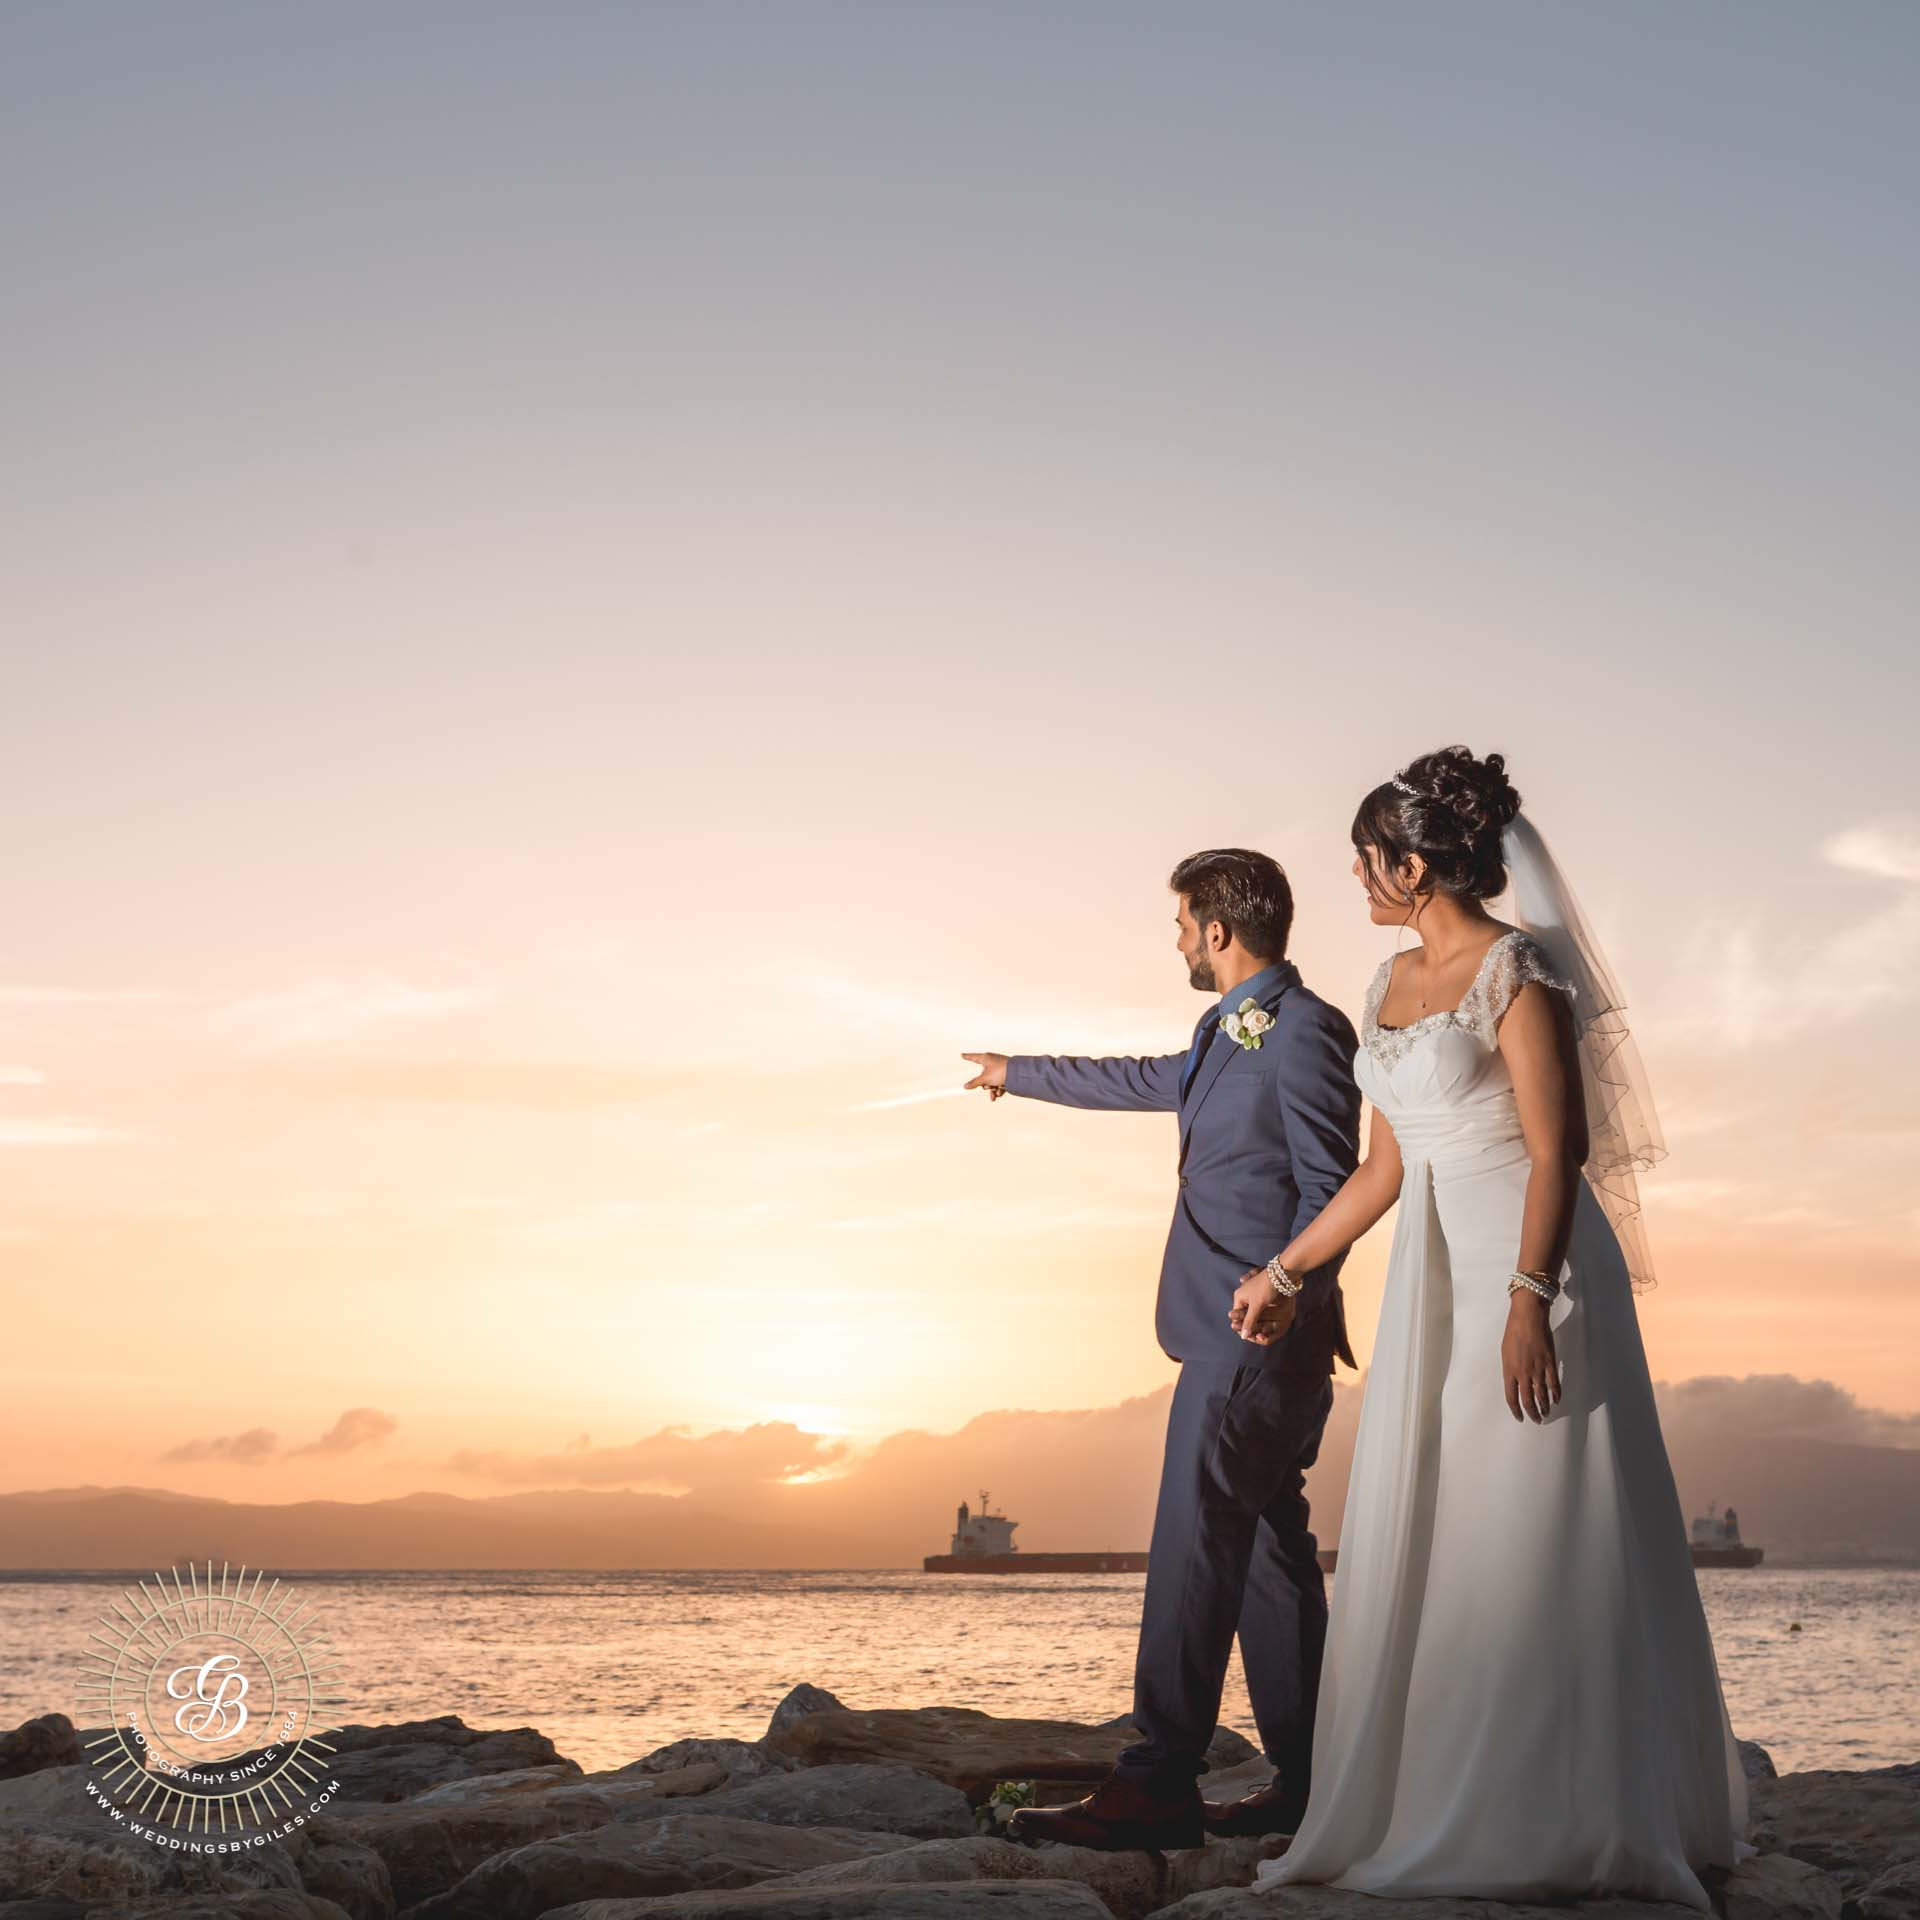 Sunset bride and groom photo shoot